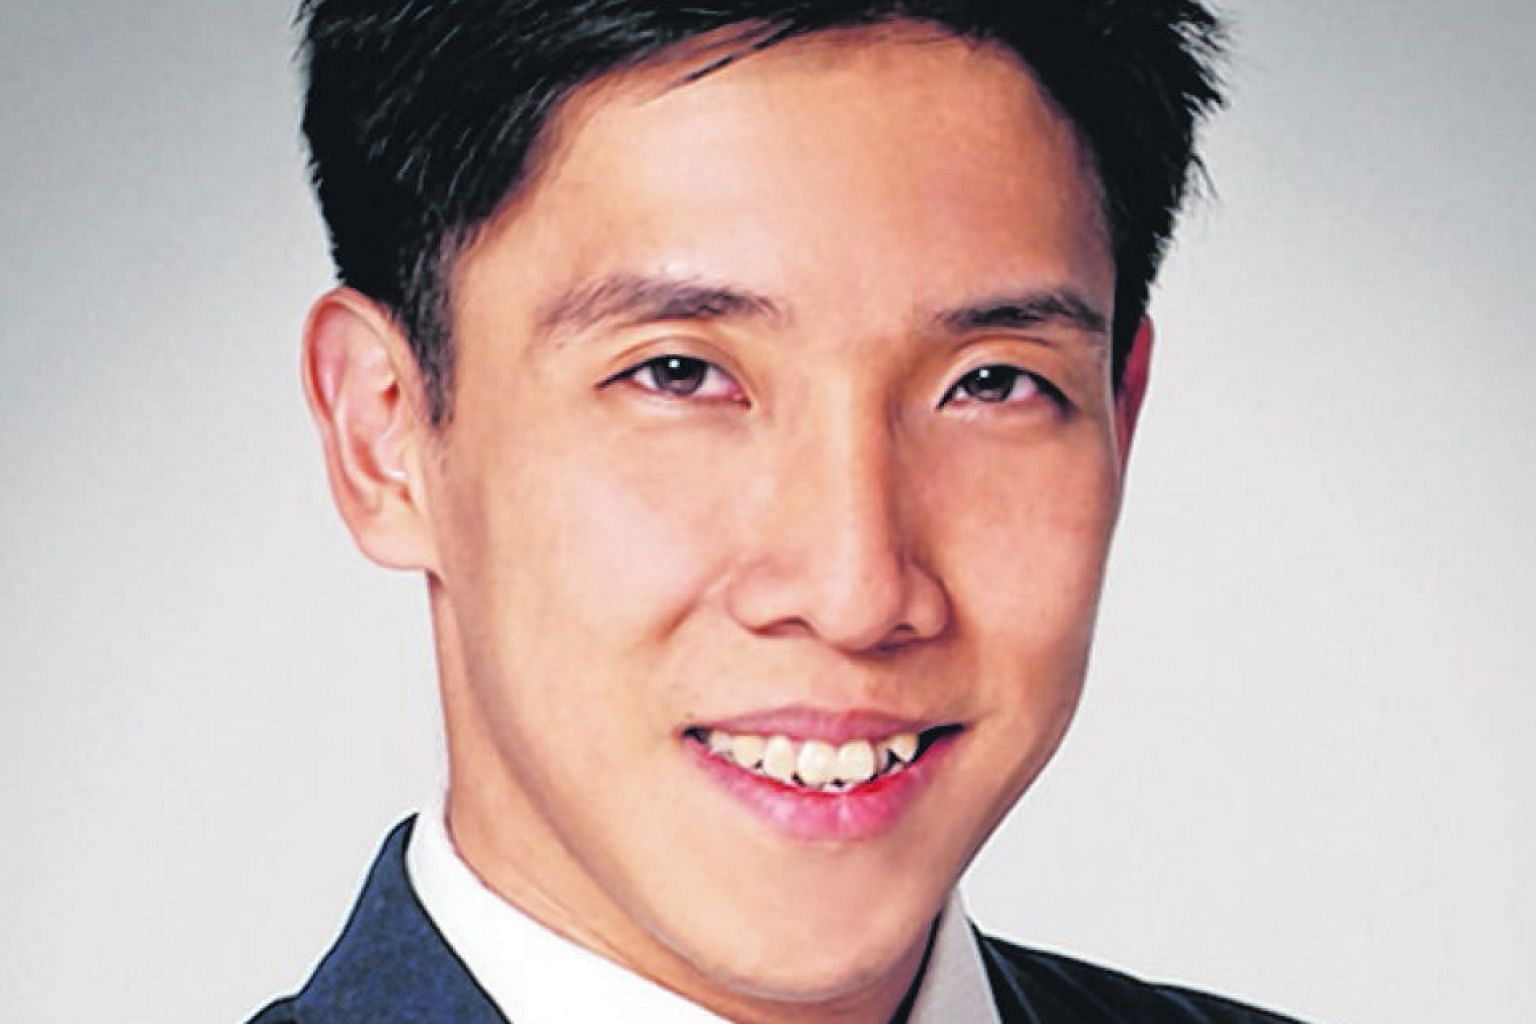 Mr David Tay will be conducting the Oral Communication Exam Series of The Straits Times English Masterclass.